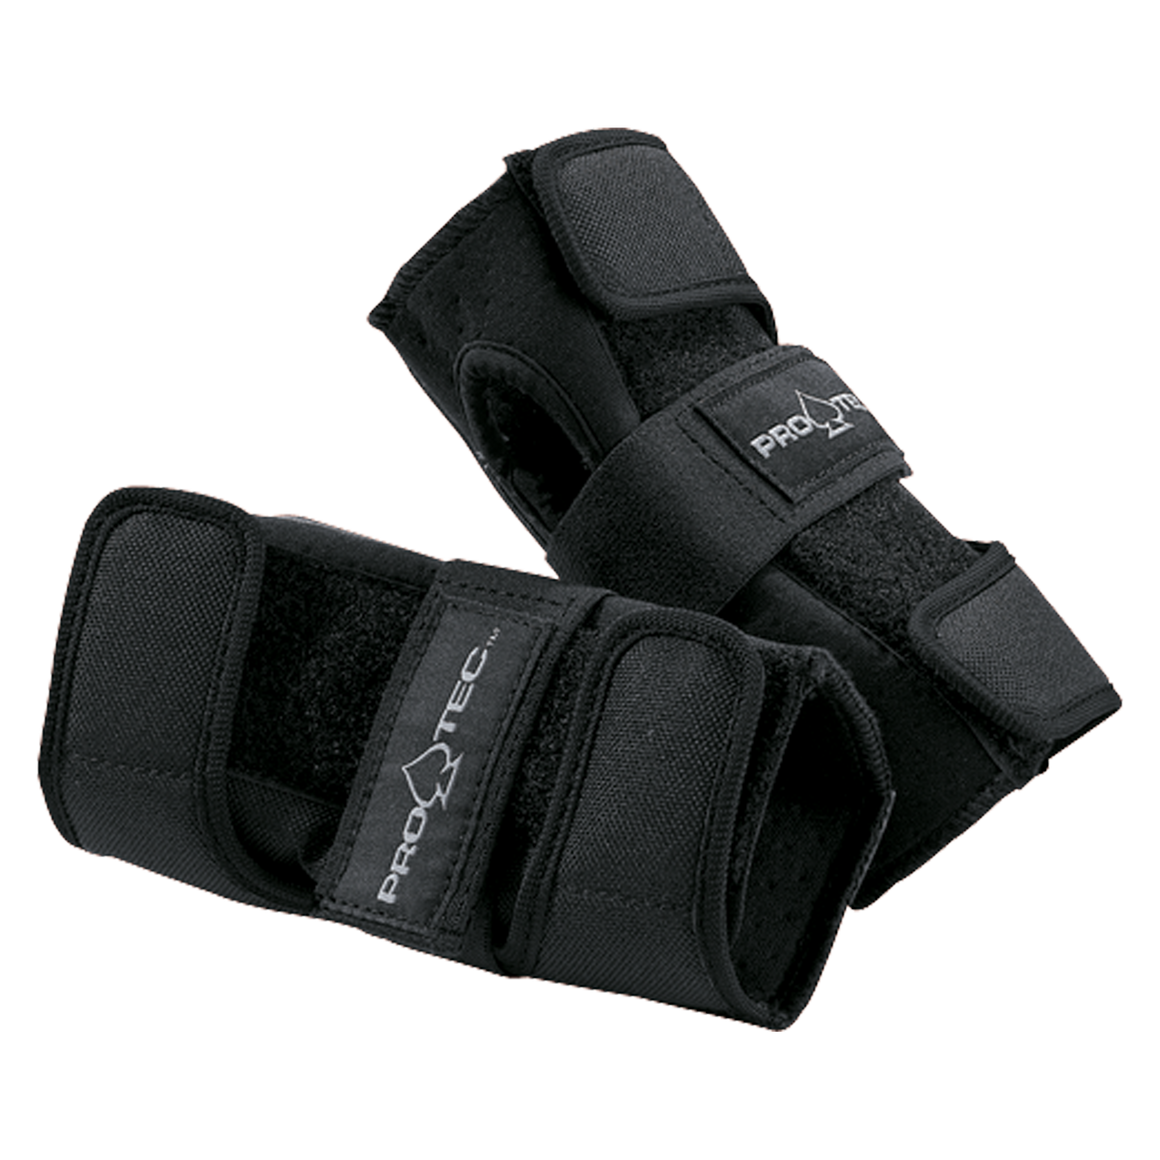 Protective Gear - Pro-tec Wrist Guards